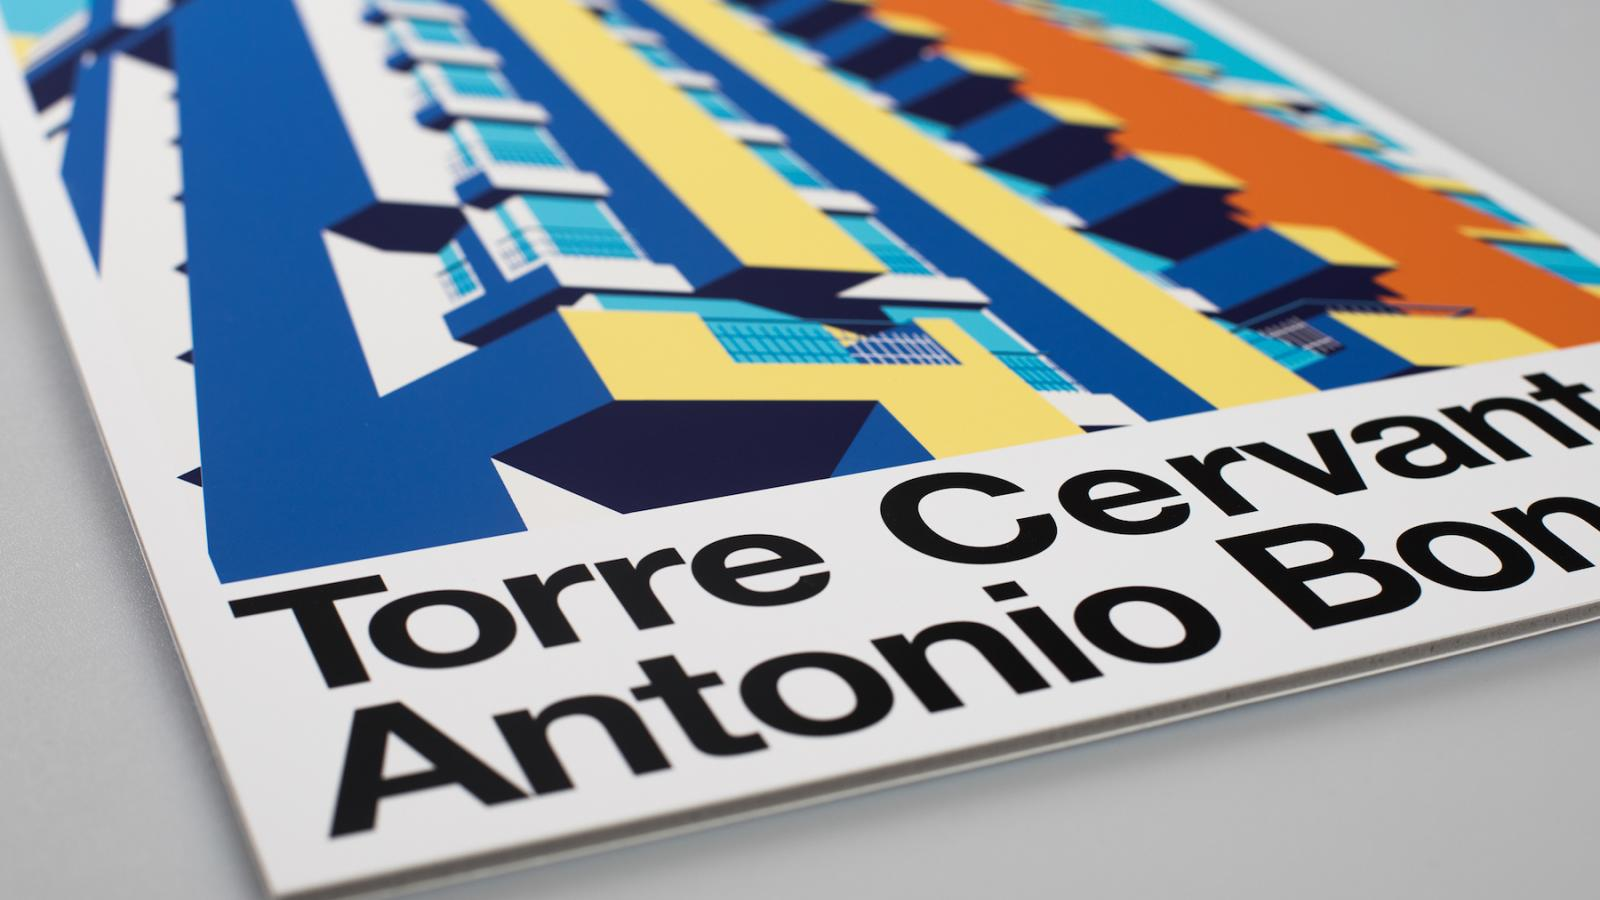 Architecture Illustration Tribute to Antonio Bonet